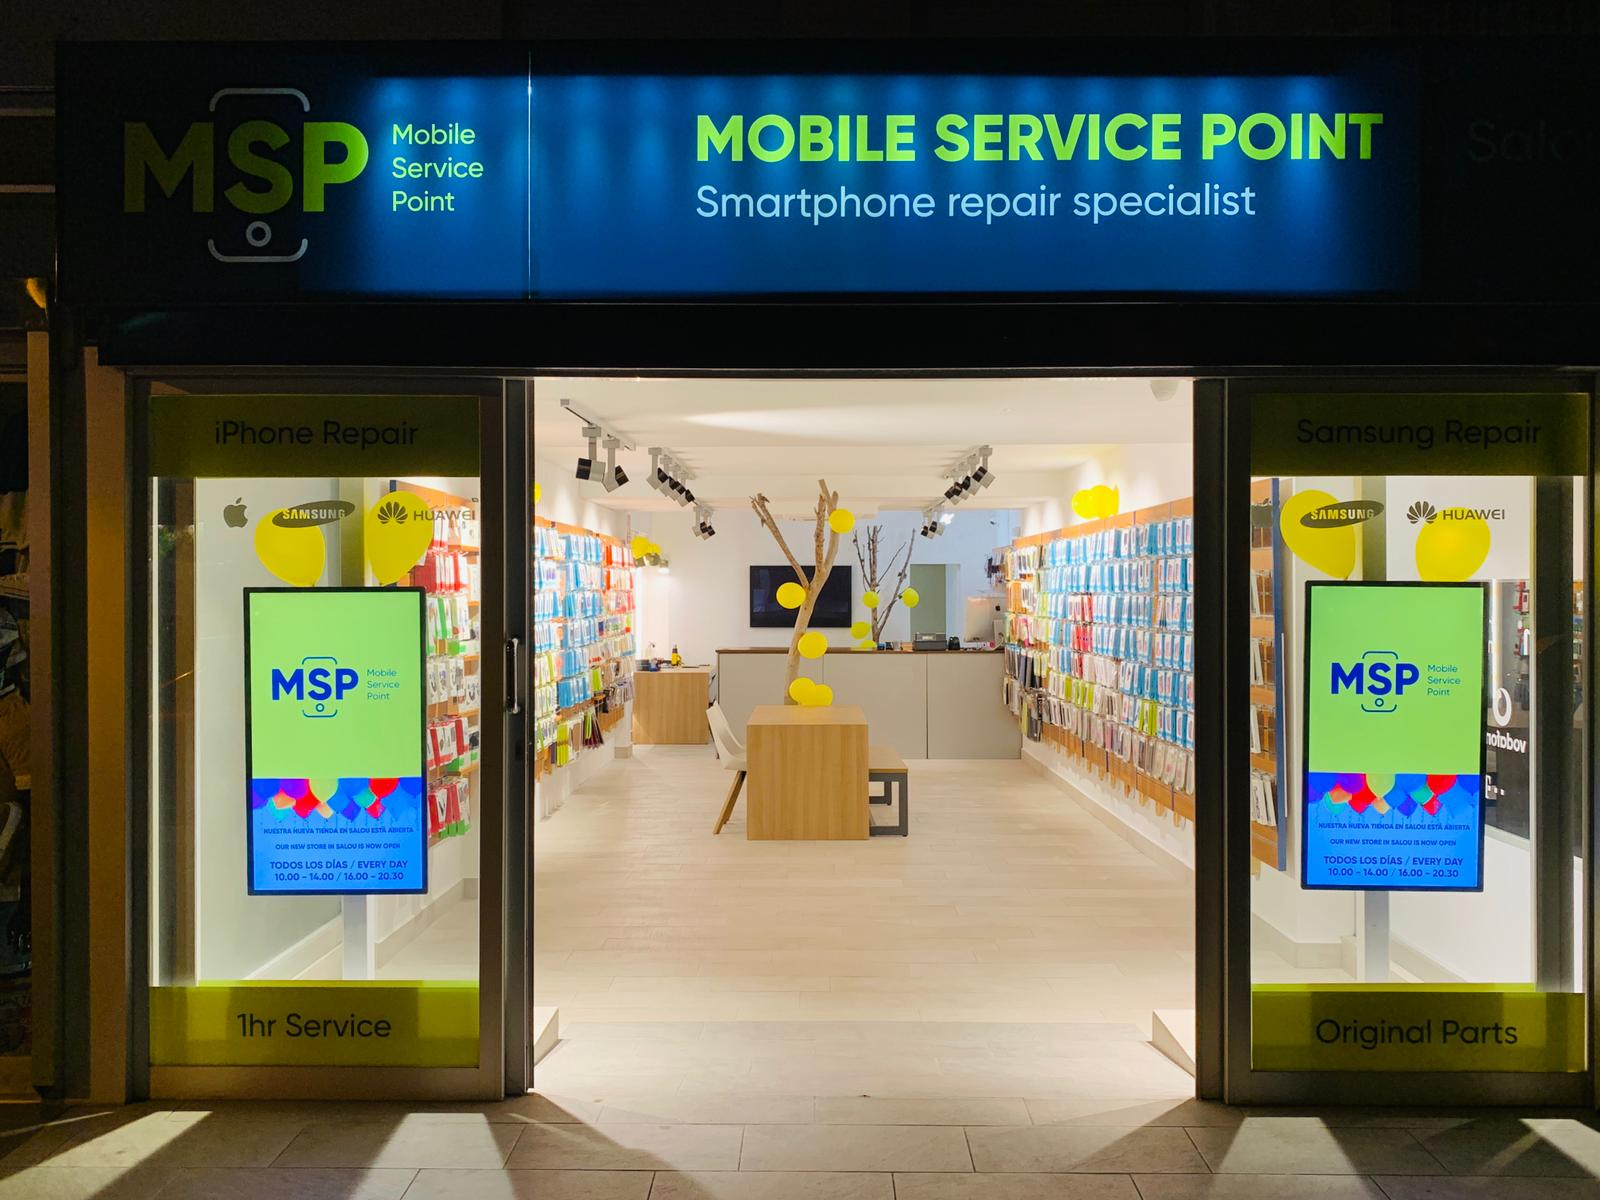 Contact | Mobile Service Point Salou - Smartphone Repair